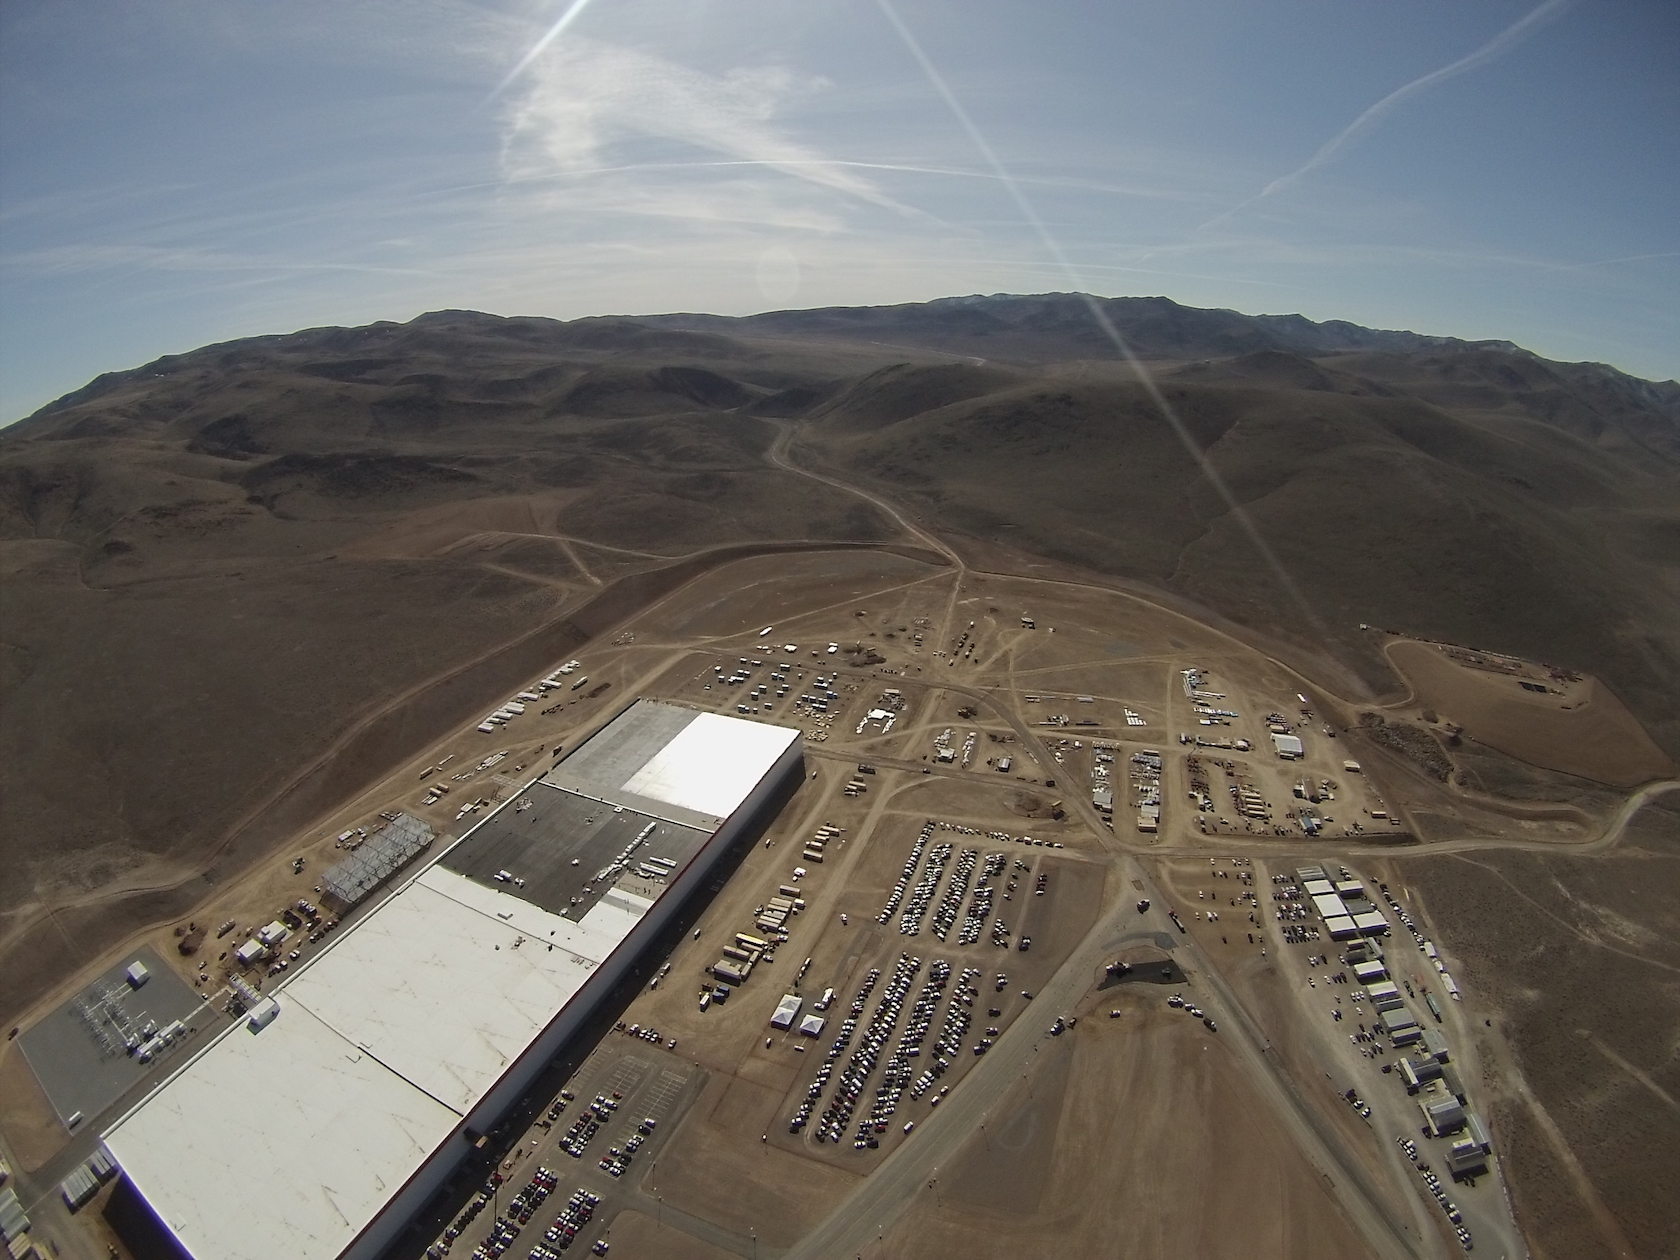 Tesla Gigafactory Feb 2016 [Source: Josh McDonald]